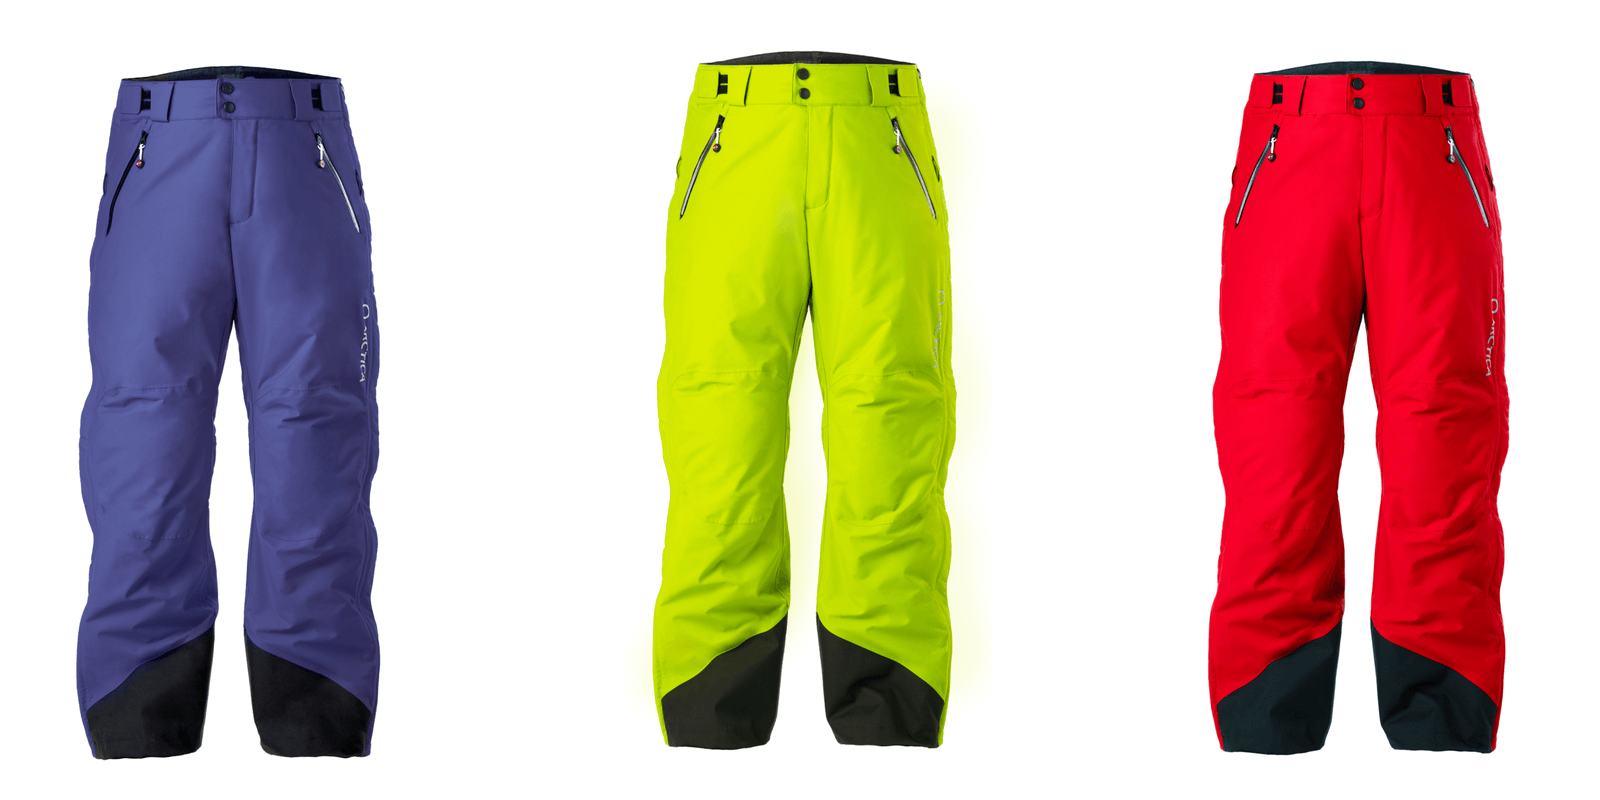 Arctica side zip 2.0 pant colors for 2017-18 Navy, Optic Yellow and Red.